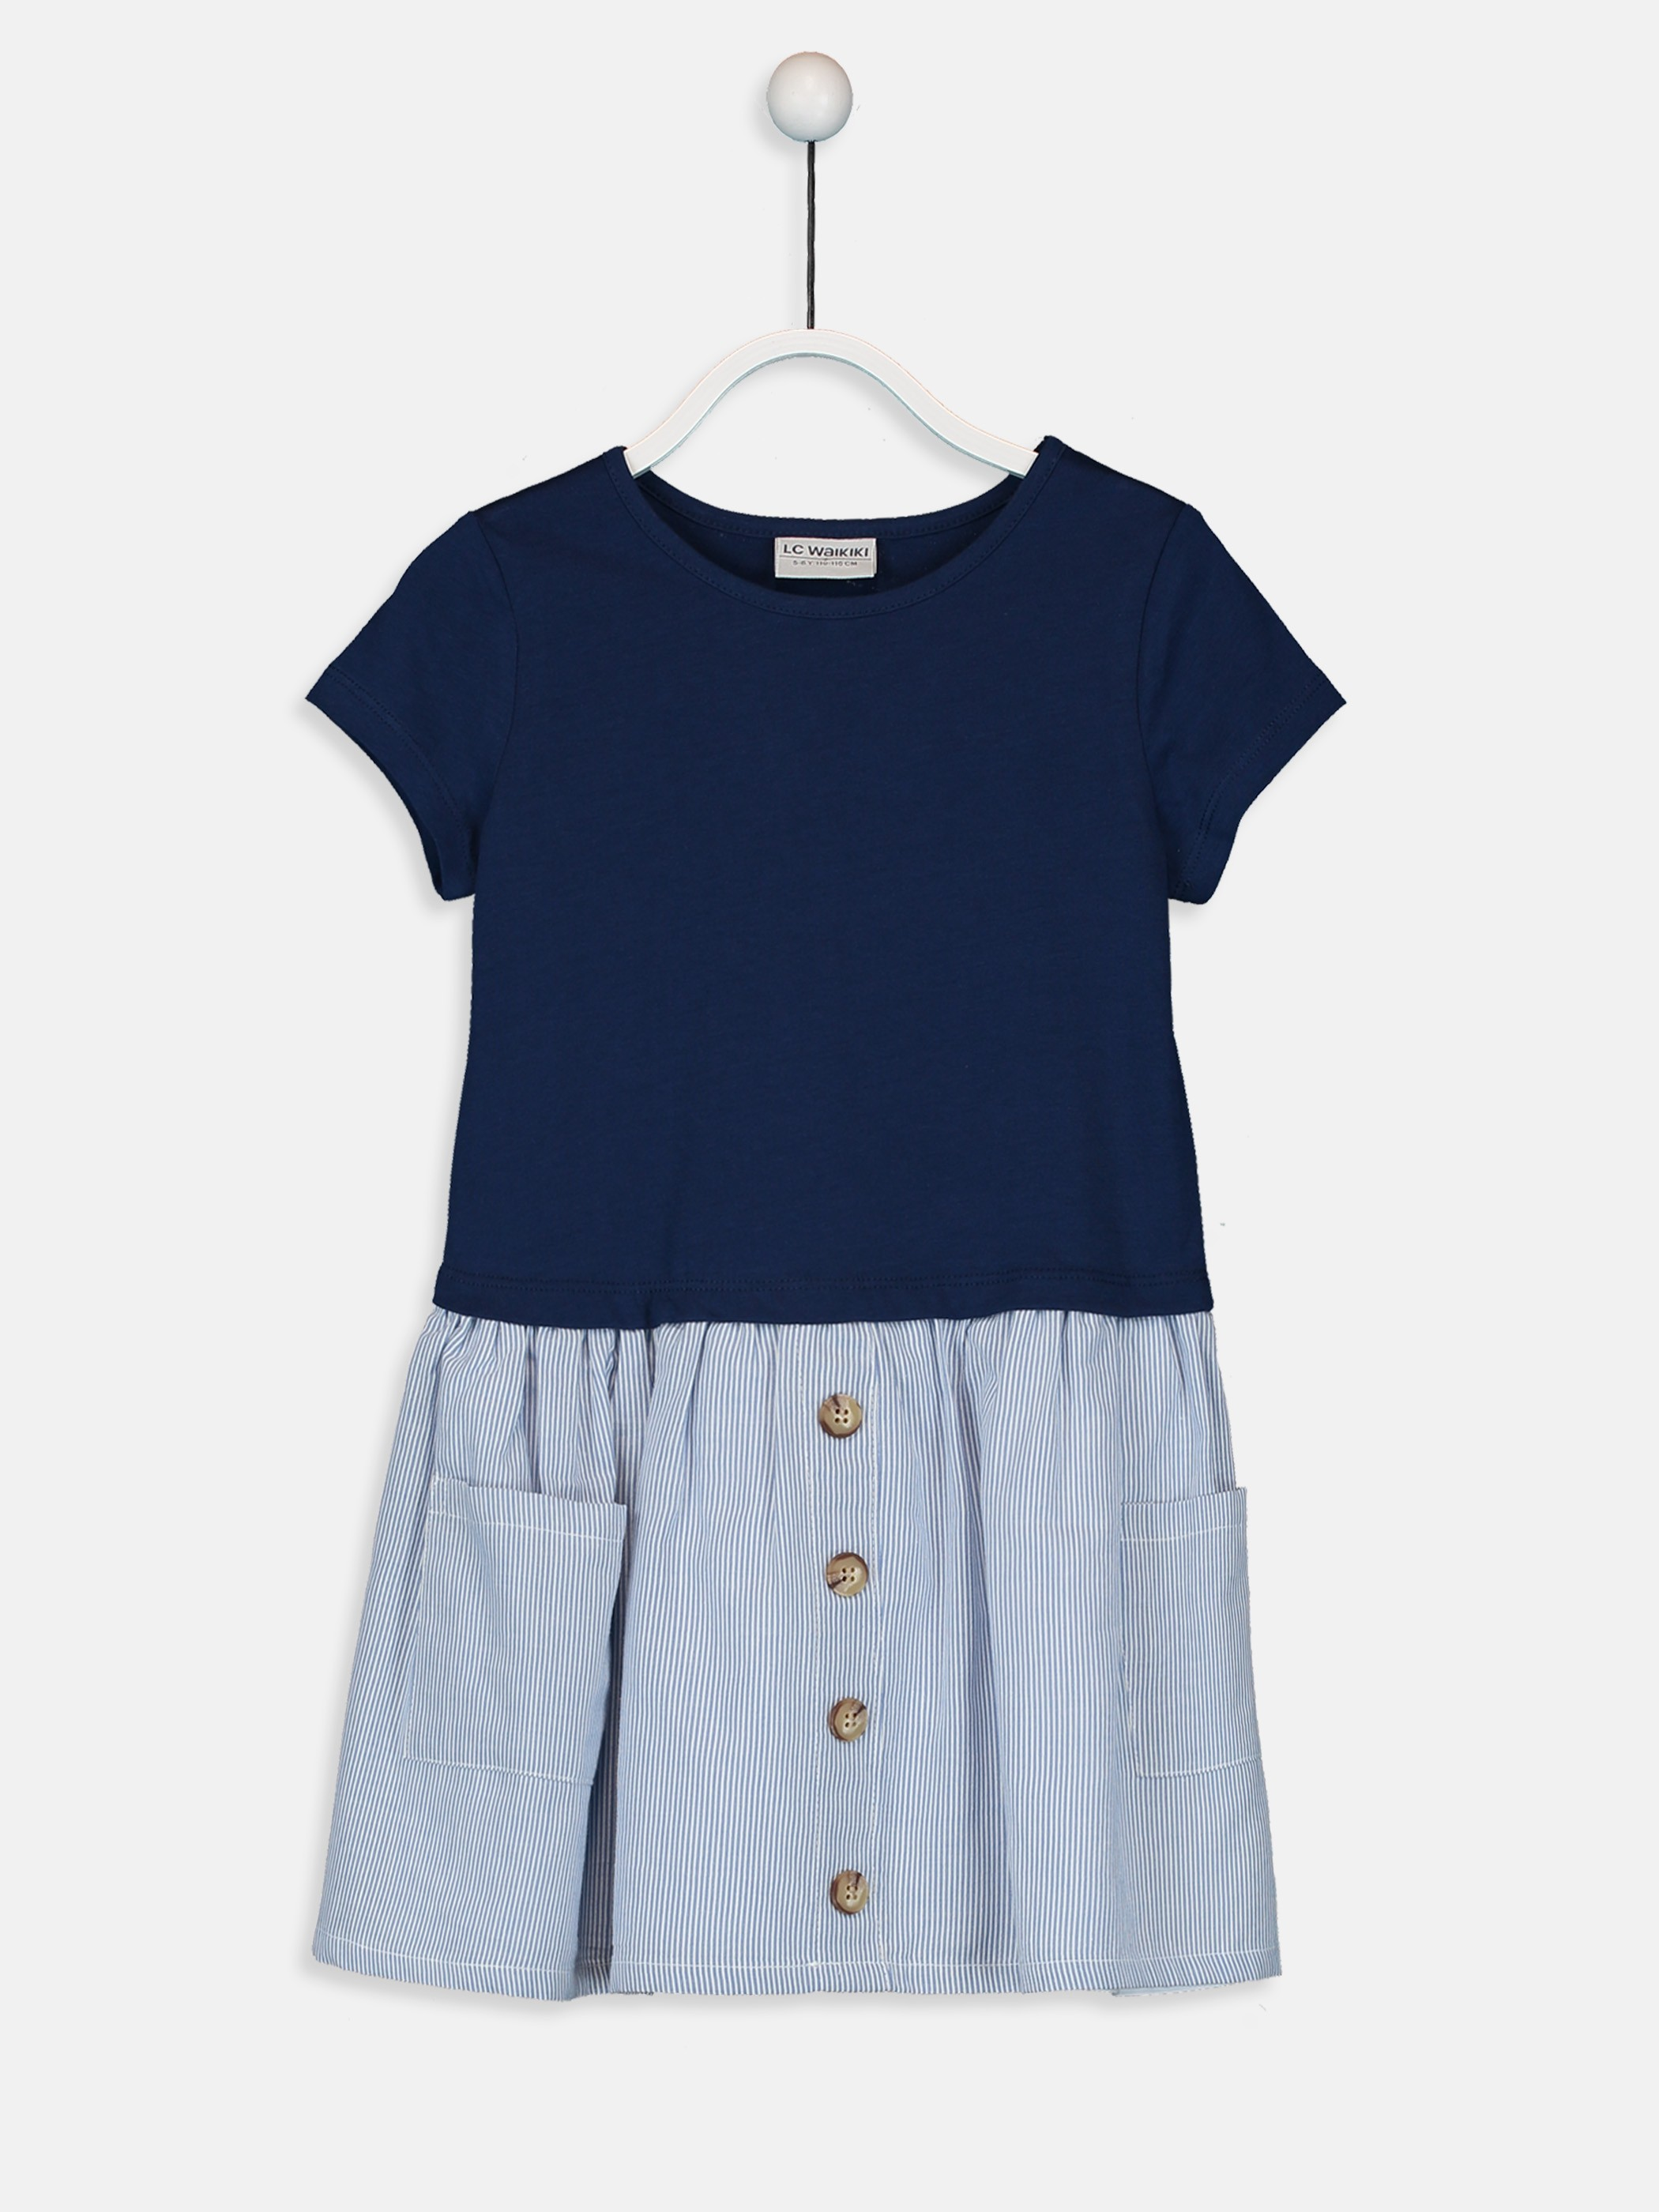 NAVY - Dress - 9SY889Z4